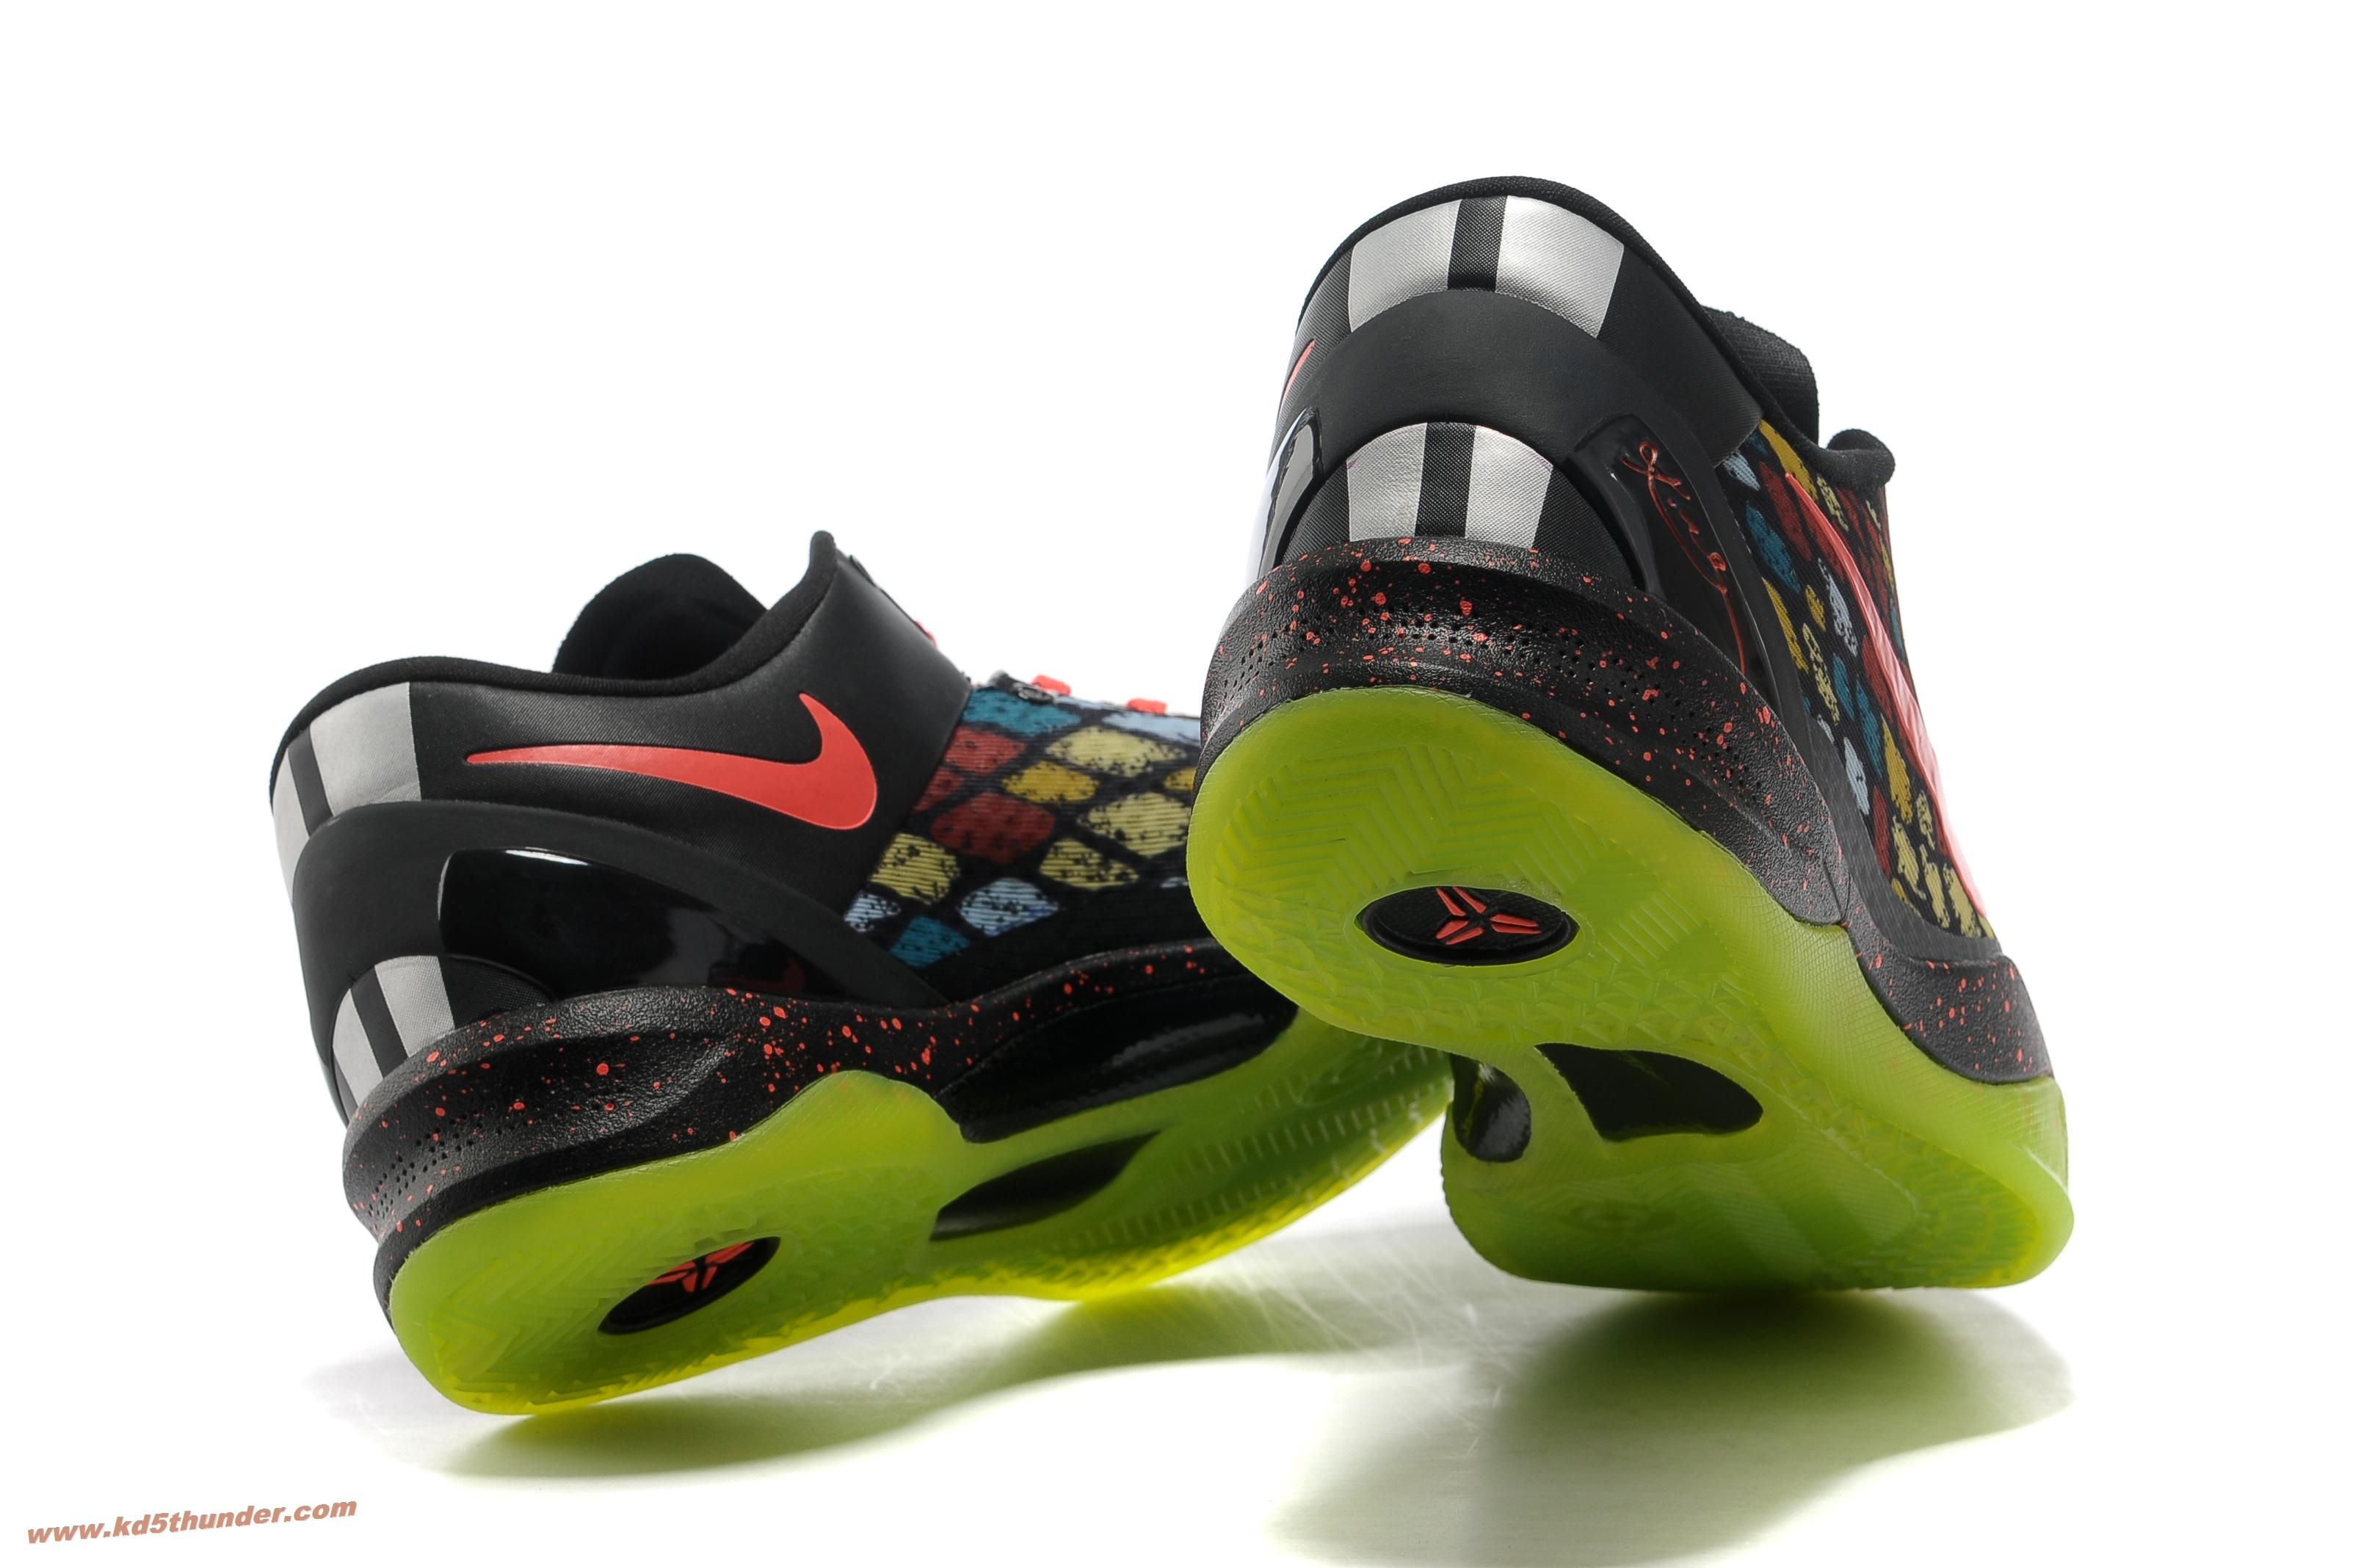 low priced 22658 d2ea3 cheap nike kobe 8 system ss 226ab 84d44 buy nike kobe 8 system christmas  year of the snake scales 555286 060 soldier 6f303 231bf ...